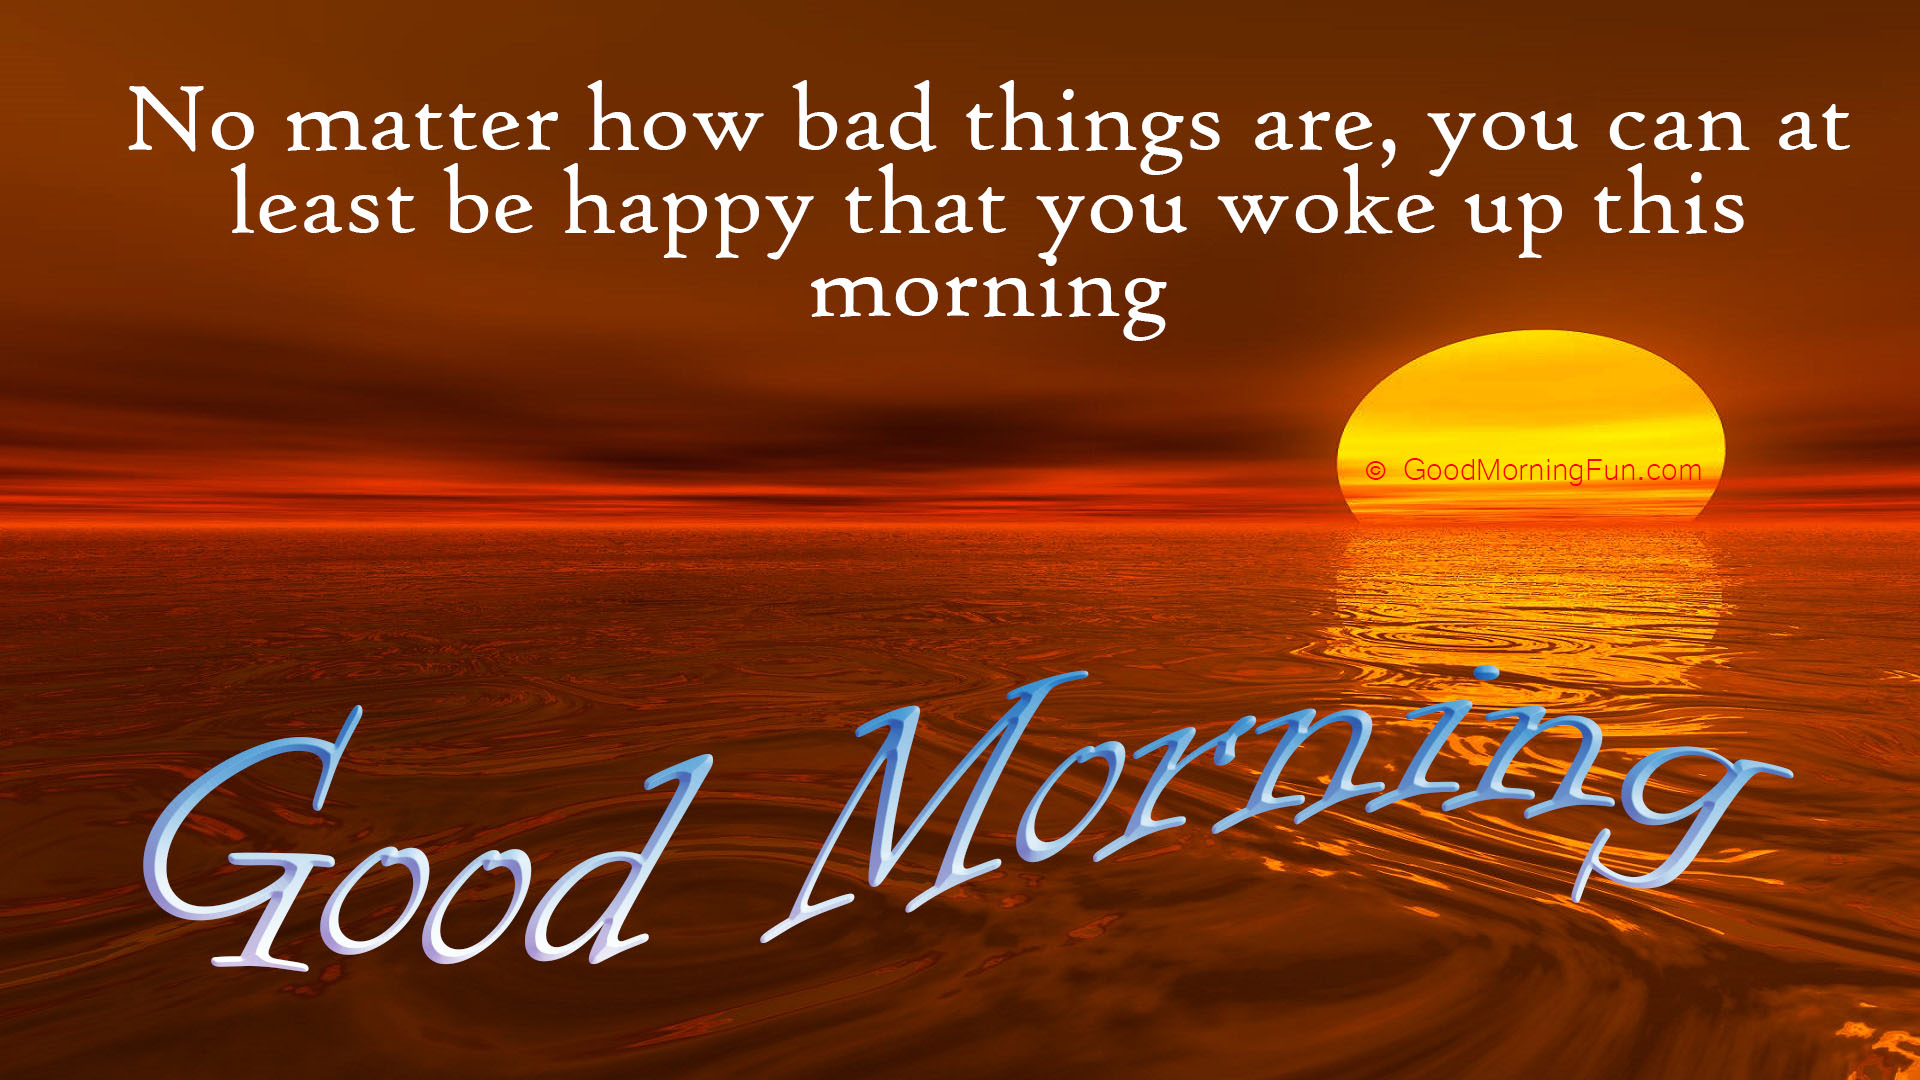 Quotes Morning Good Morning Quotes To Wake Up With Happy Thoughts  Good Morning Fun